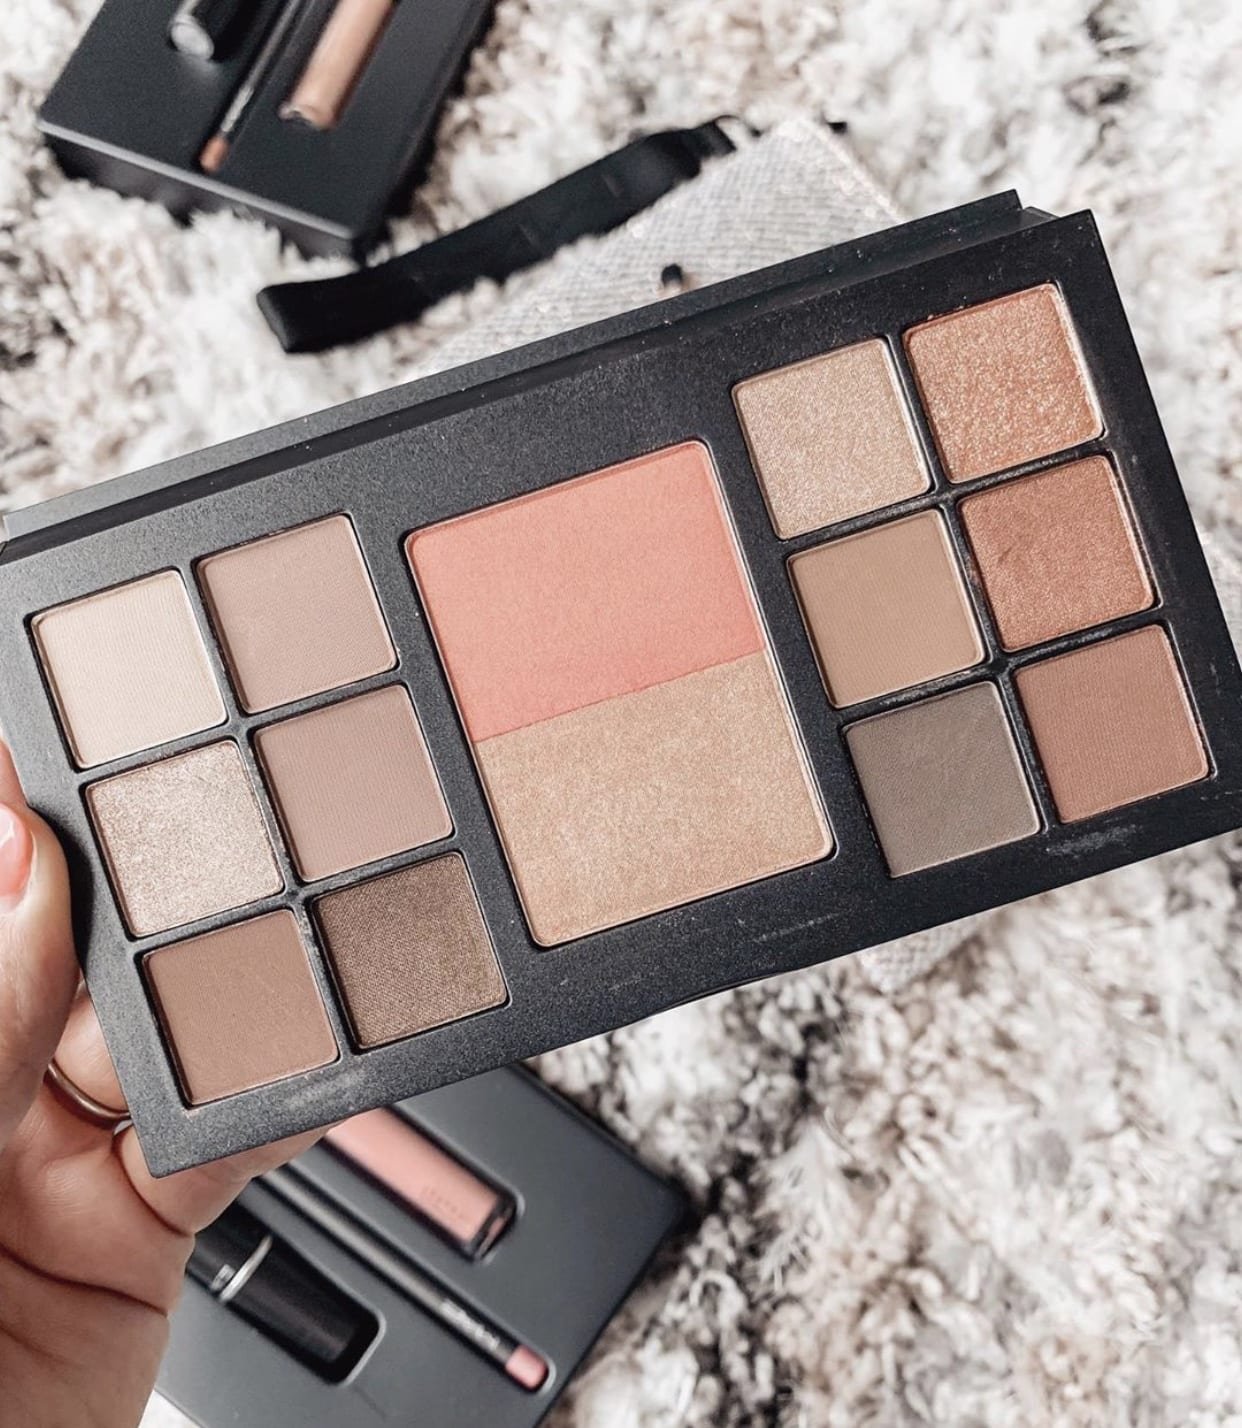 in this photo, Adaleta Avdic is showing her new palette from MAC that is filled with eyeshadows, bronzer, blush, and highlighter.